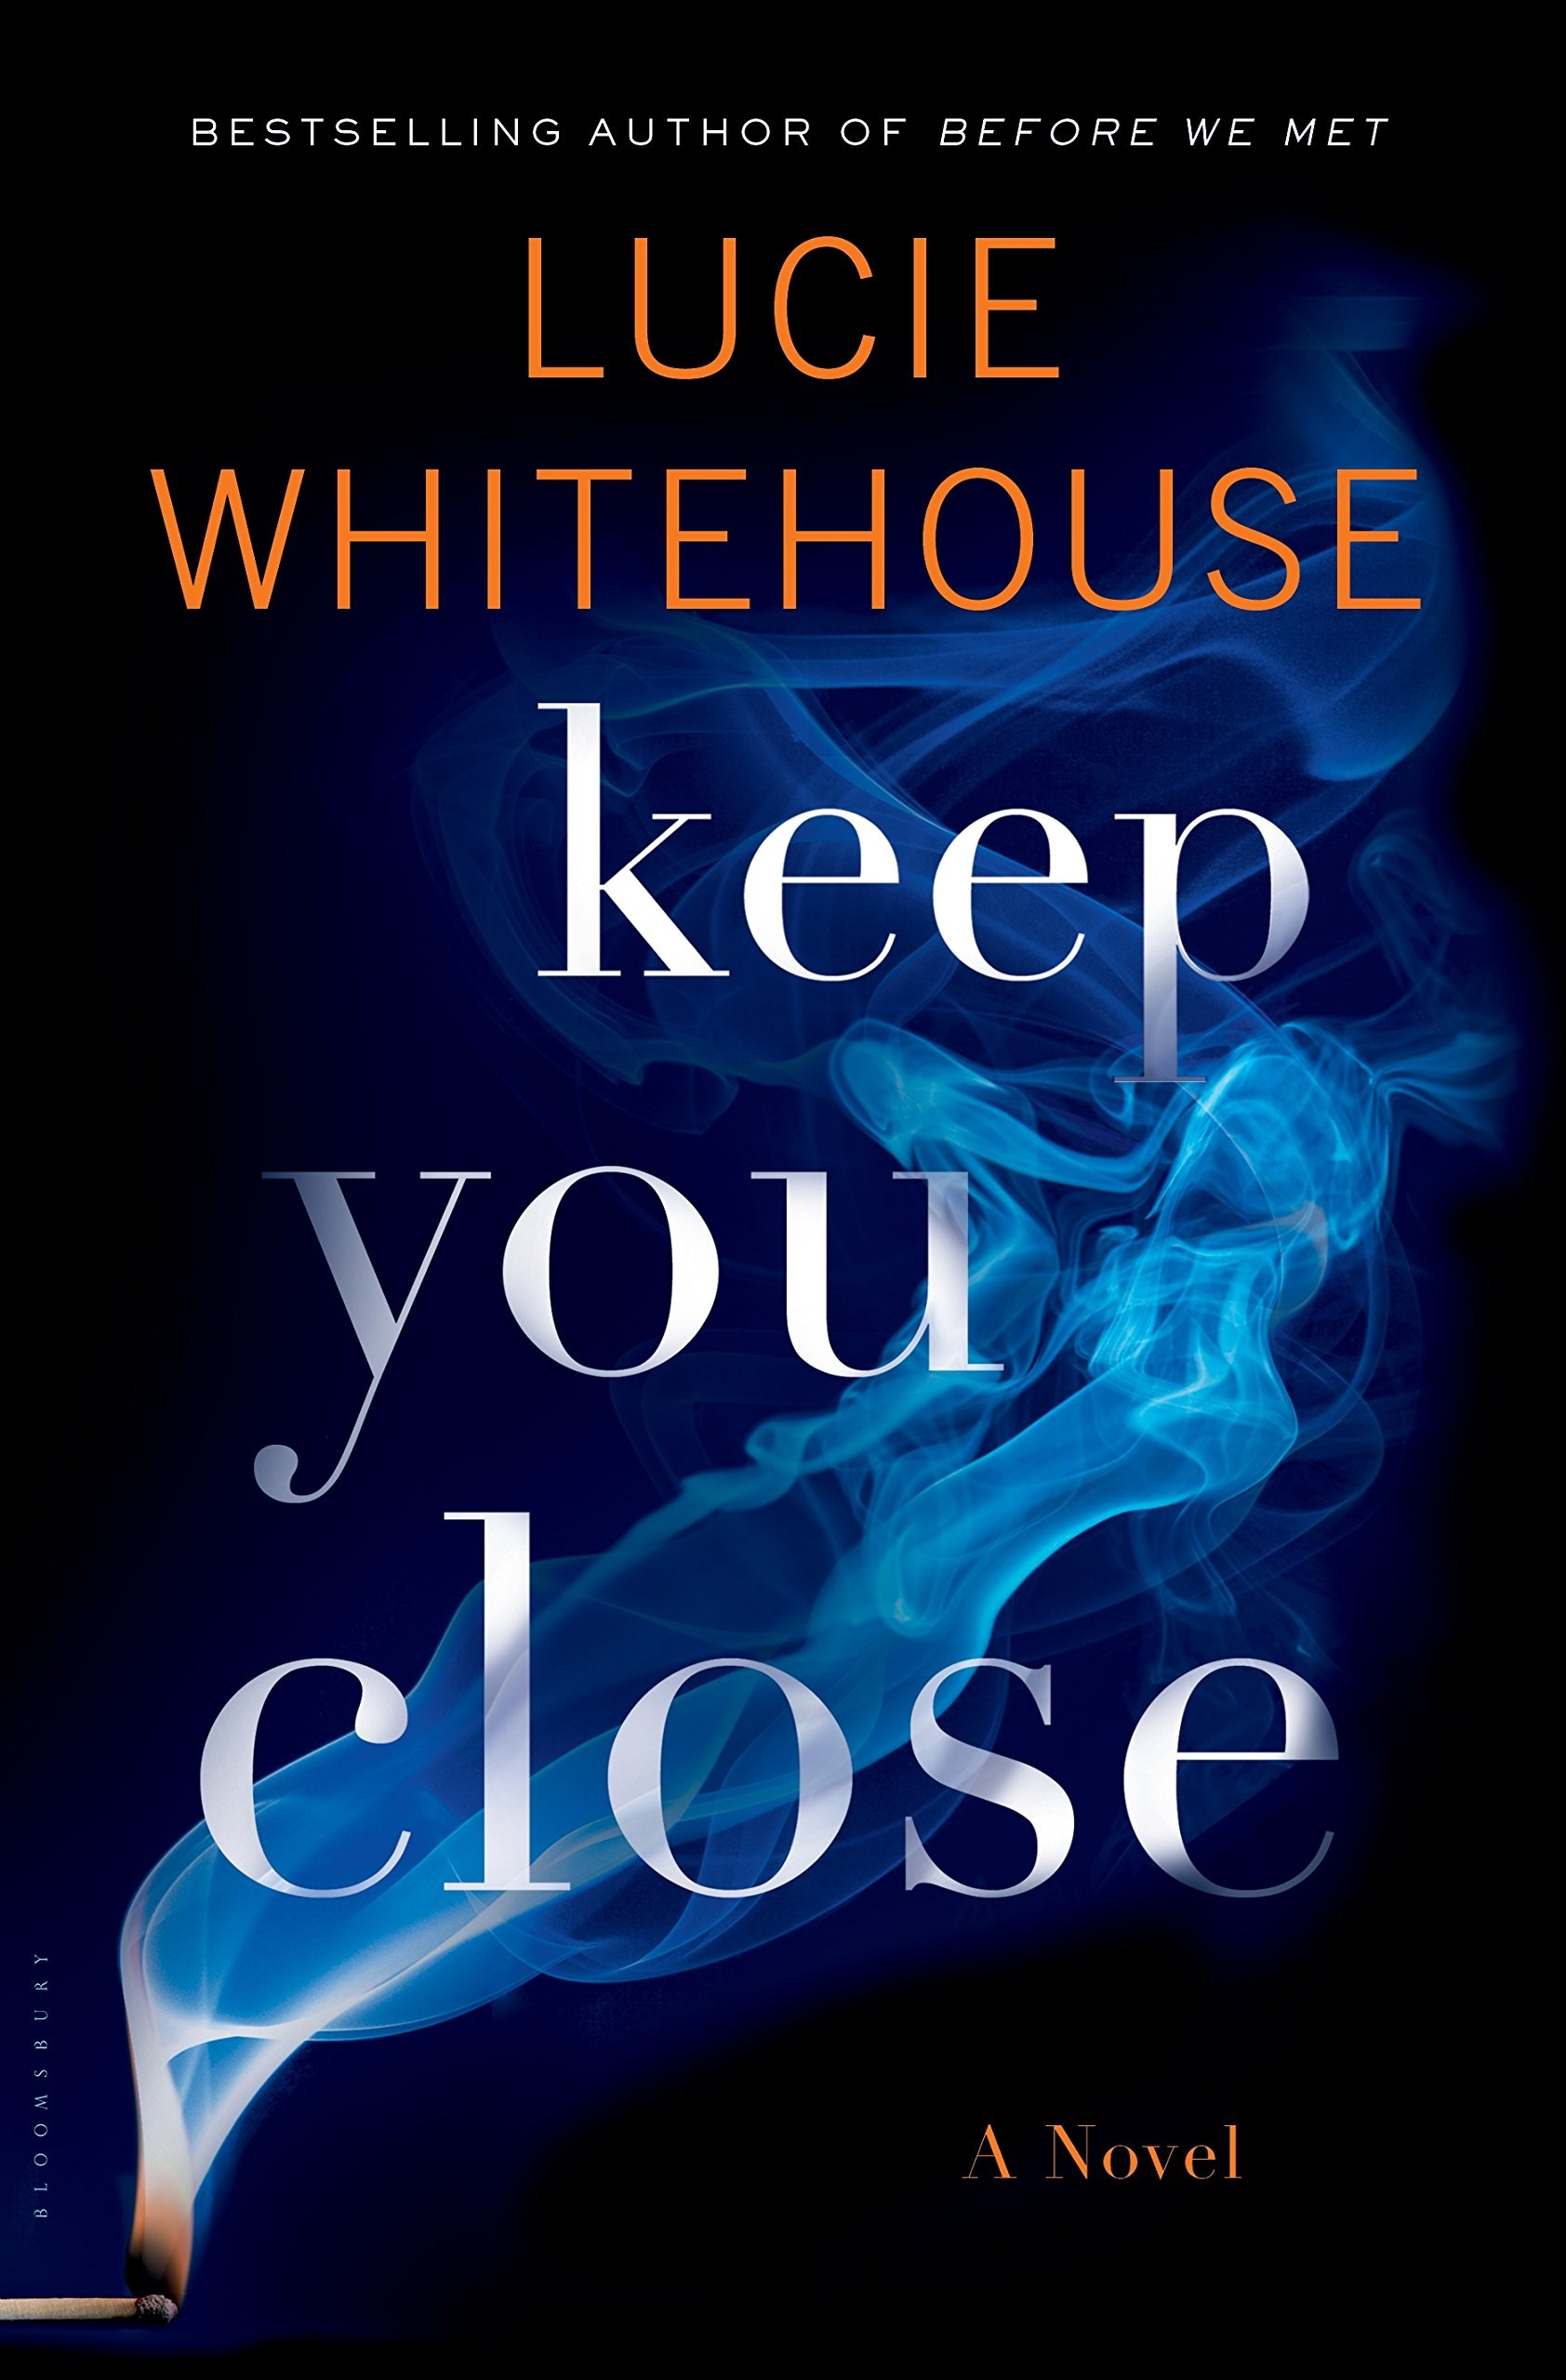 <p><em>Keep You Close</em> by Lucie Whitehouse</p> <p>Nothing helps to take your mind off endless waiting like an absorbing psychological thriller. This one by British author Lucie Whitehouse tackles obsession, family, friendship, and secrets. Esteemed artist Marianne Glass falls to her death one snowy evening, and her estranged best friend Rowan Winter is determined to find out whether it really was an accident, or something more sinister. You'll barely notice you've been sitting on your suitcase for hours.</p>